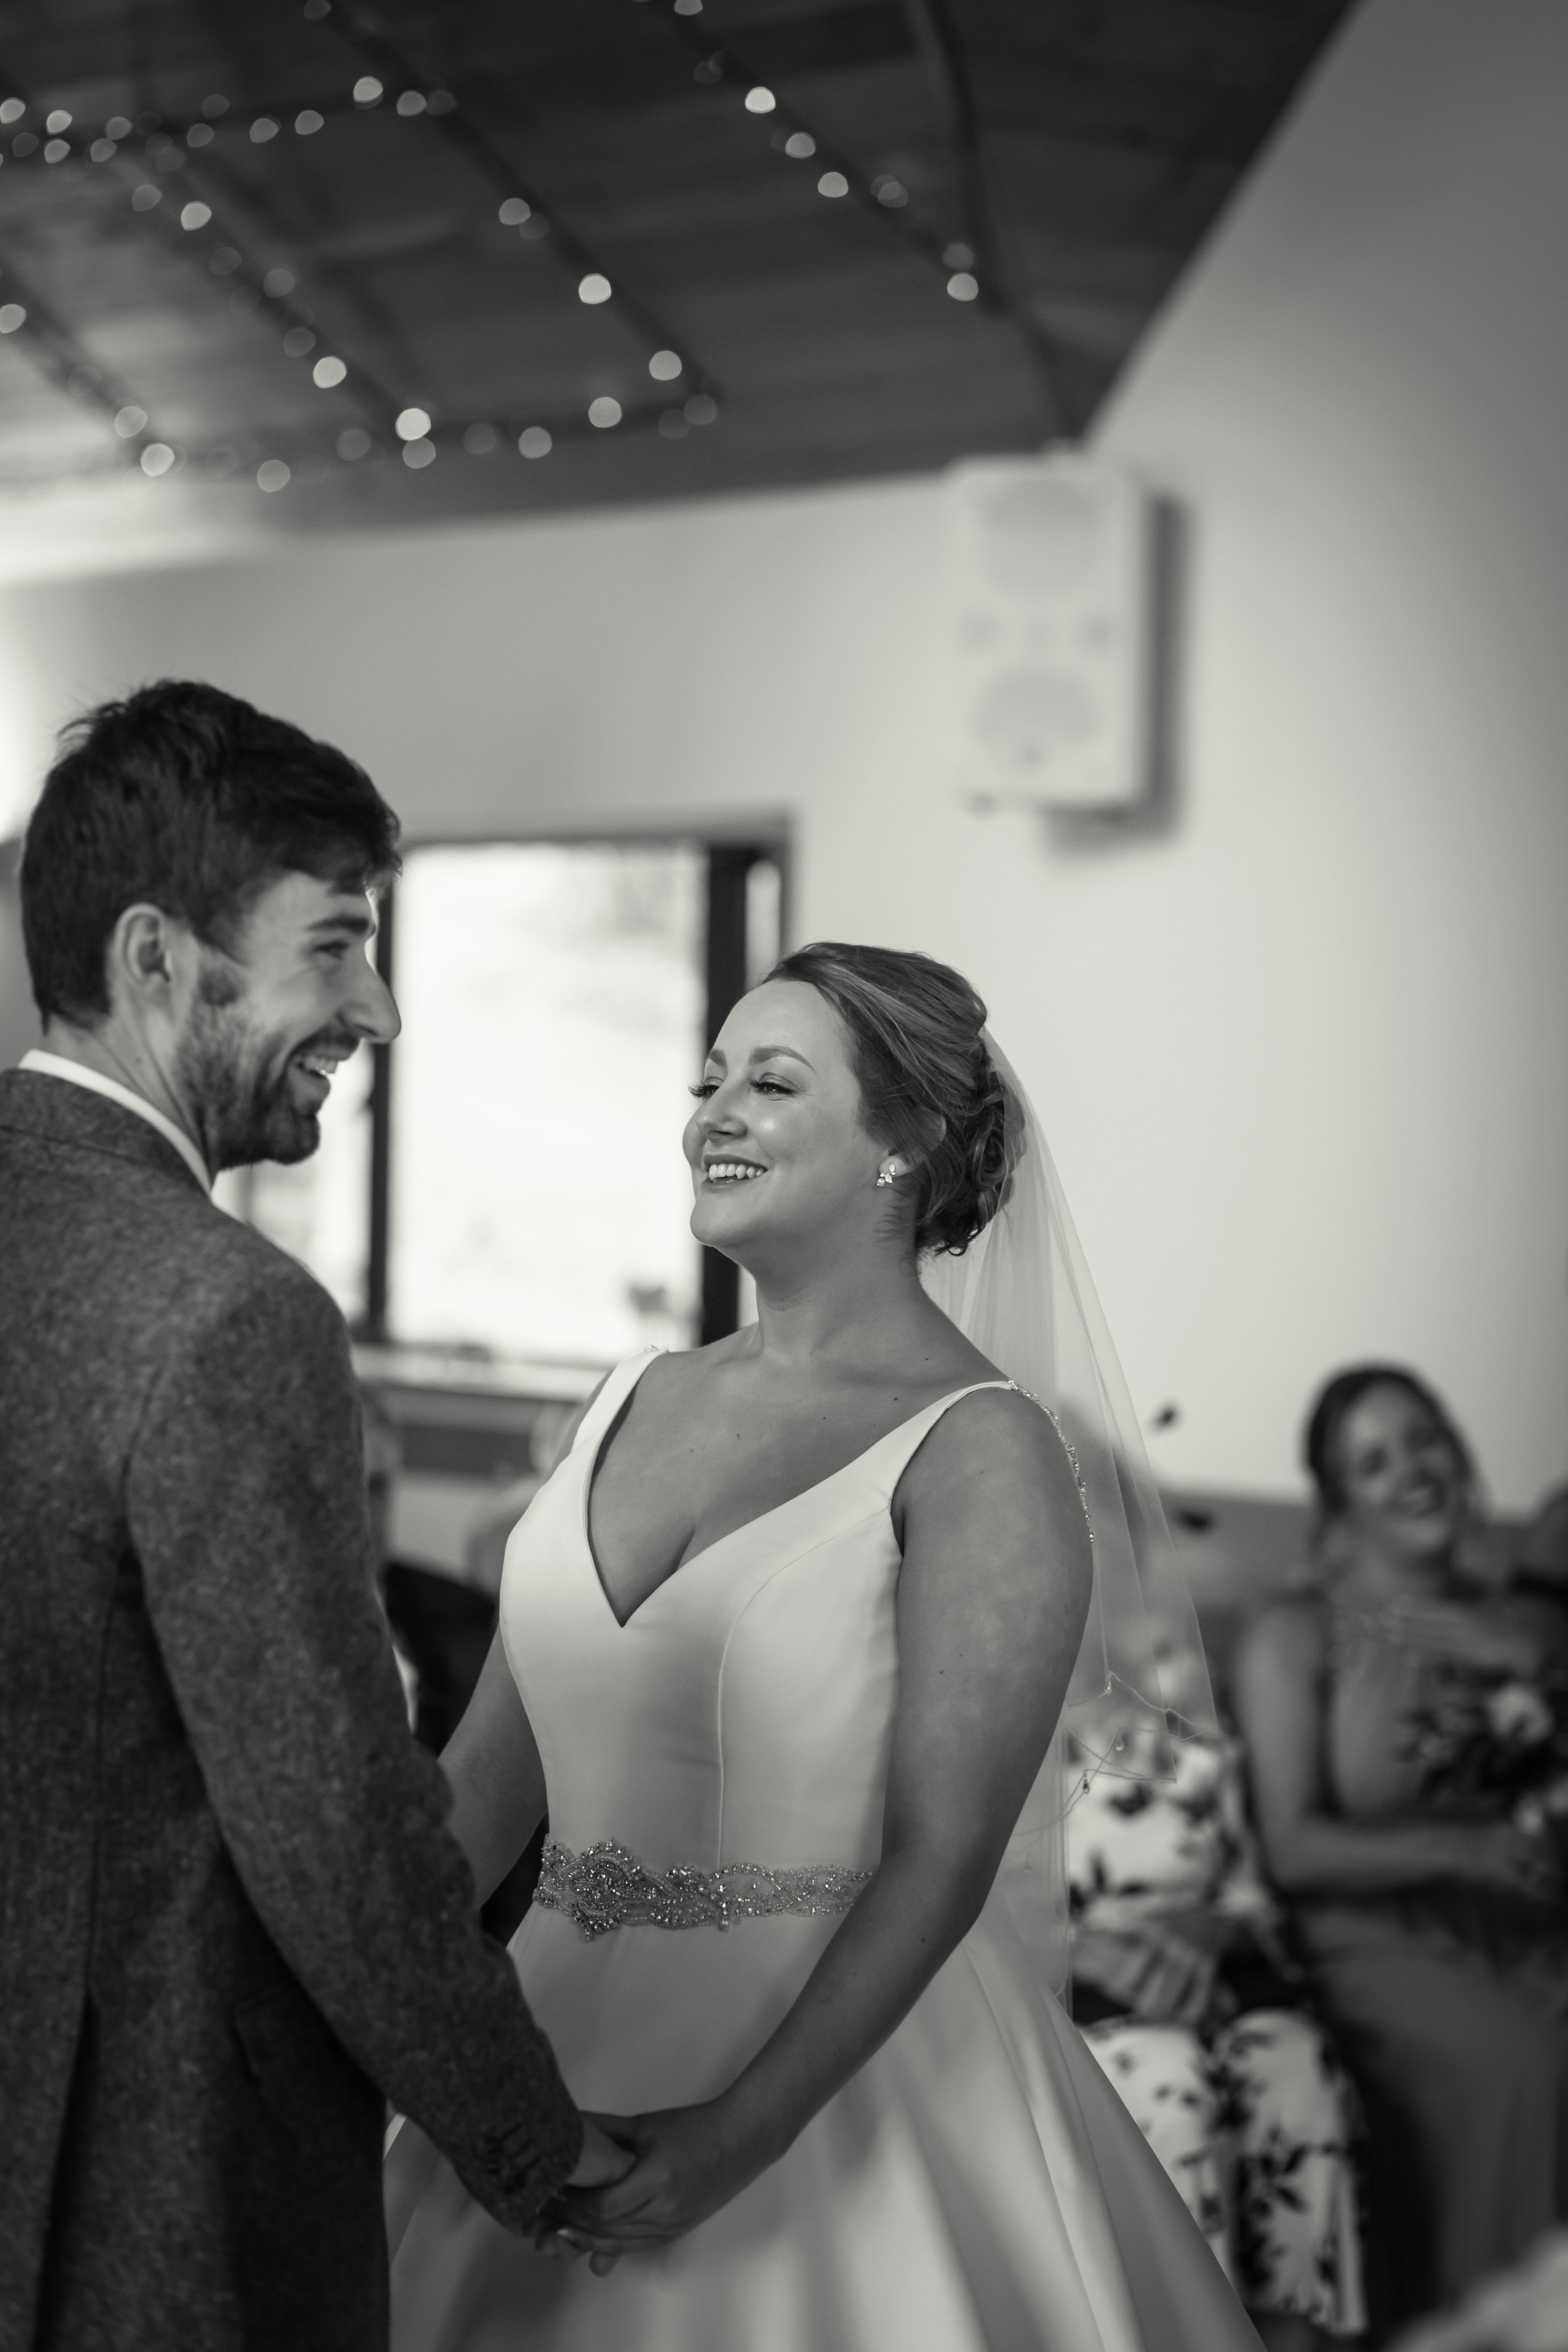 Black and white photograph of Bride and groom holding hands and looking at each other during their wedding ceremony